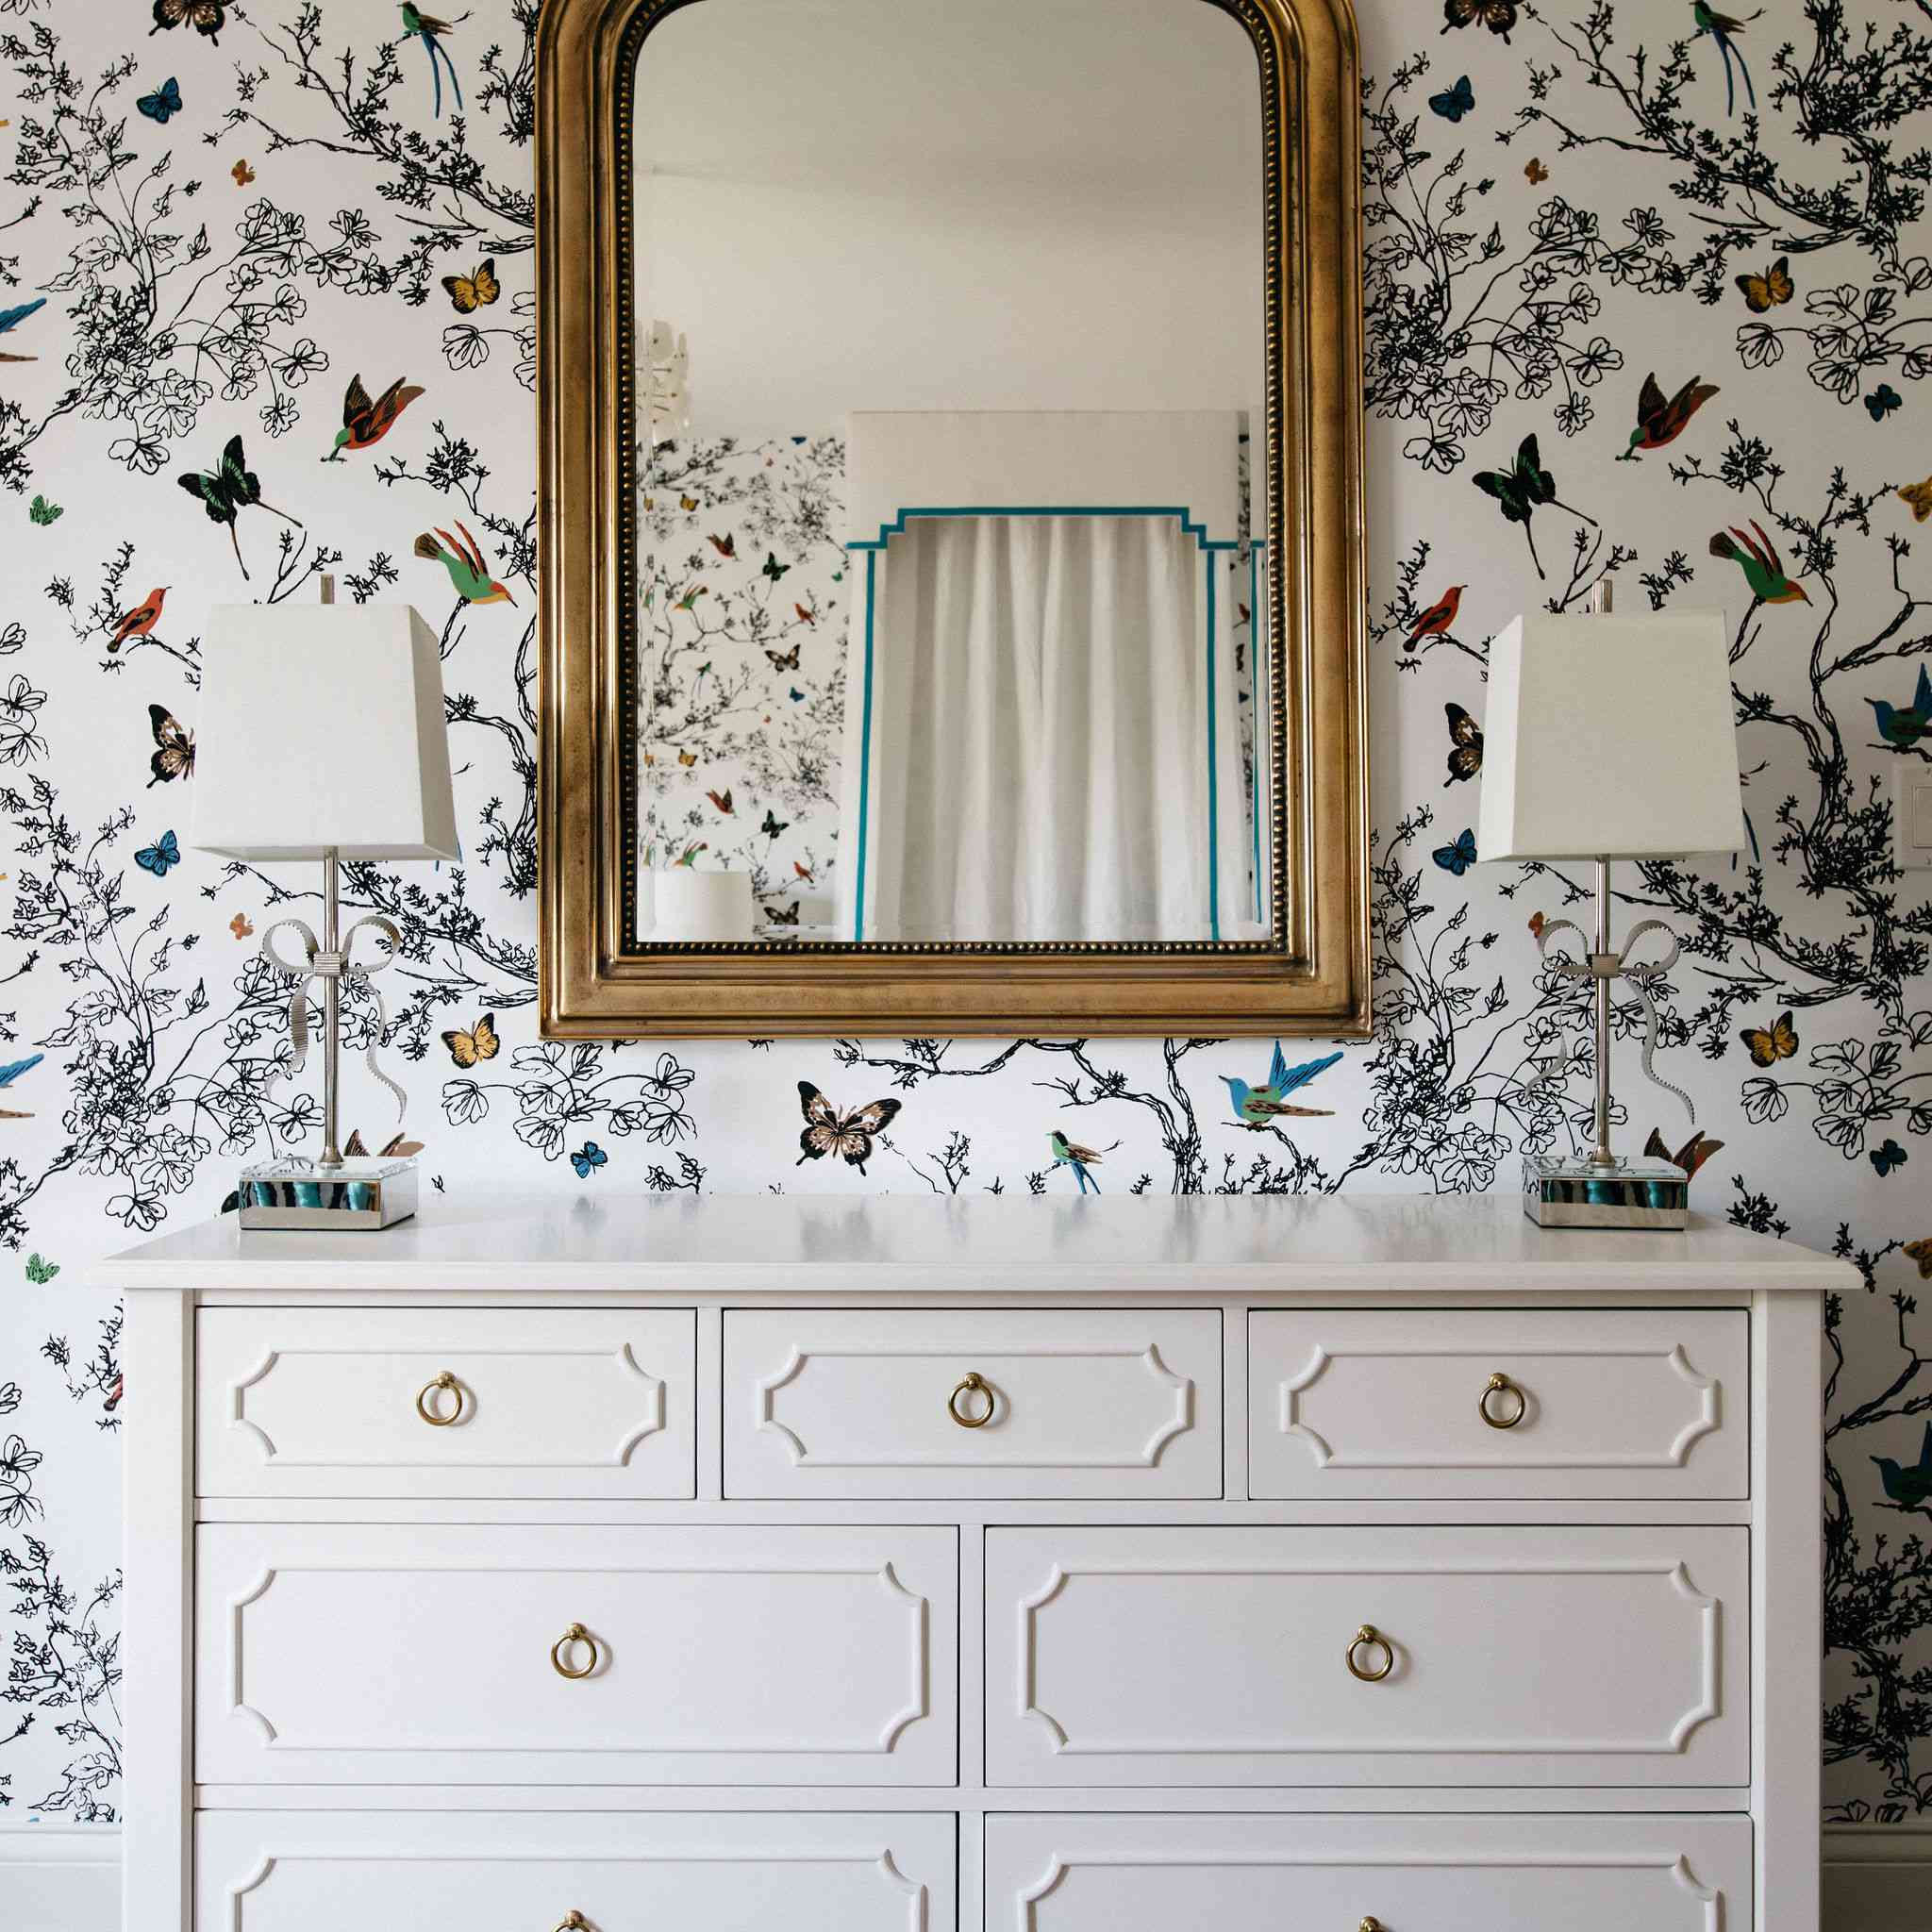 makeover of the week - white dresser with antique gold mirror above